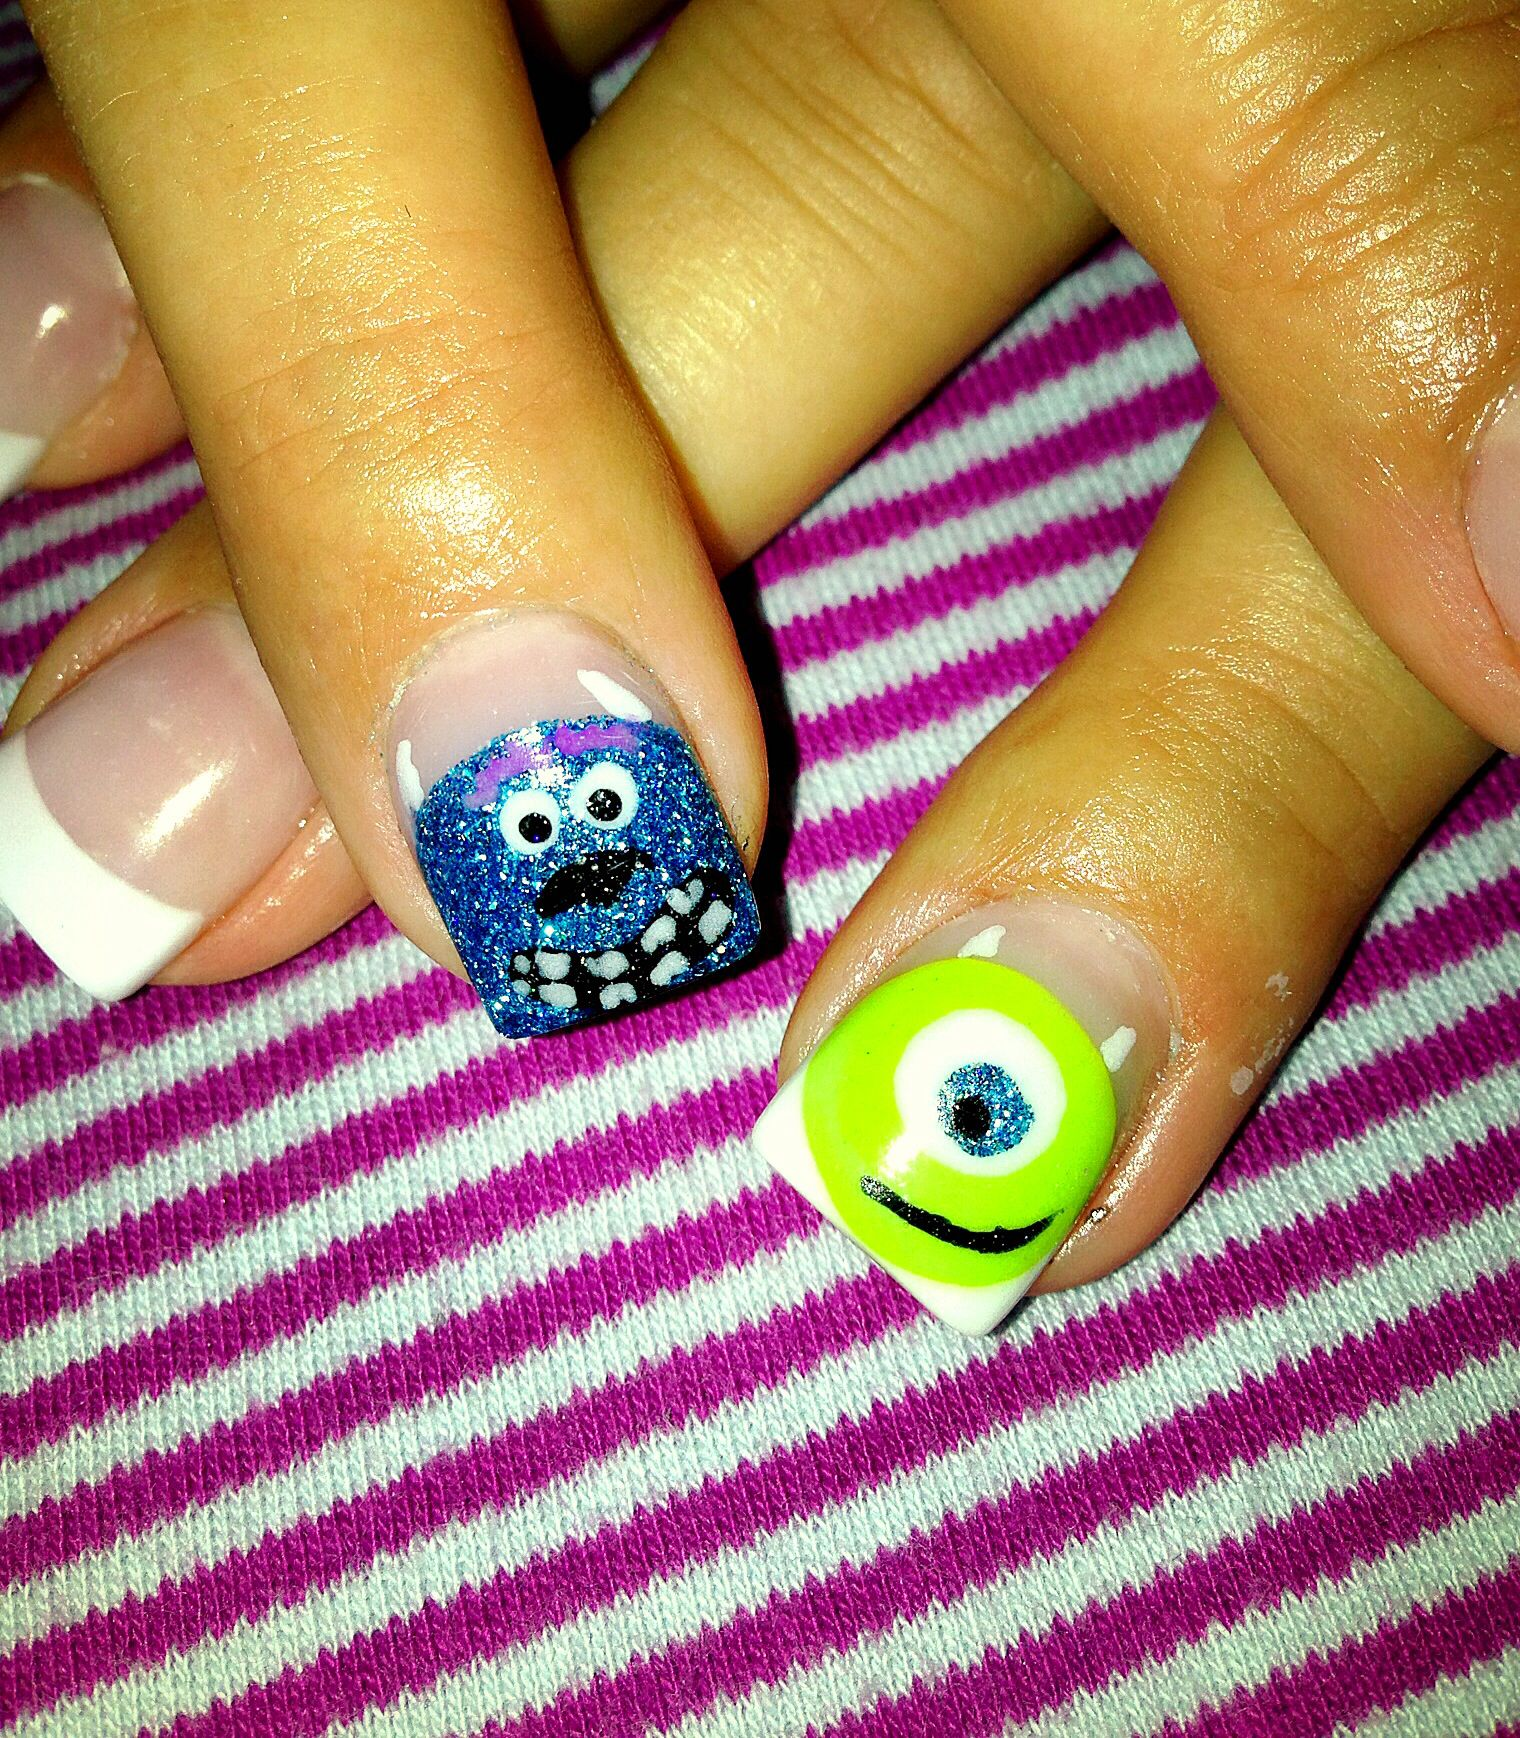 Monsters Inc. Nail Art, Mike Wazowski and Sulley. | Nails ...